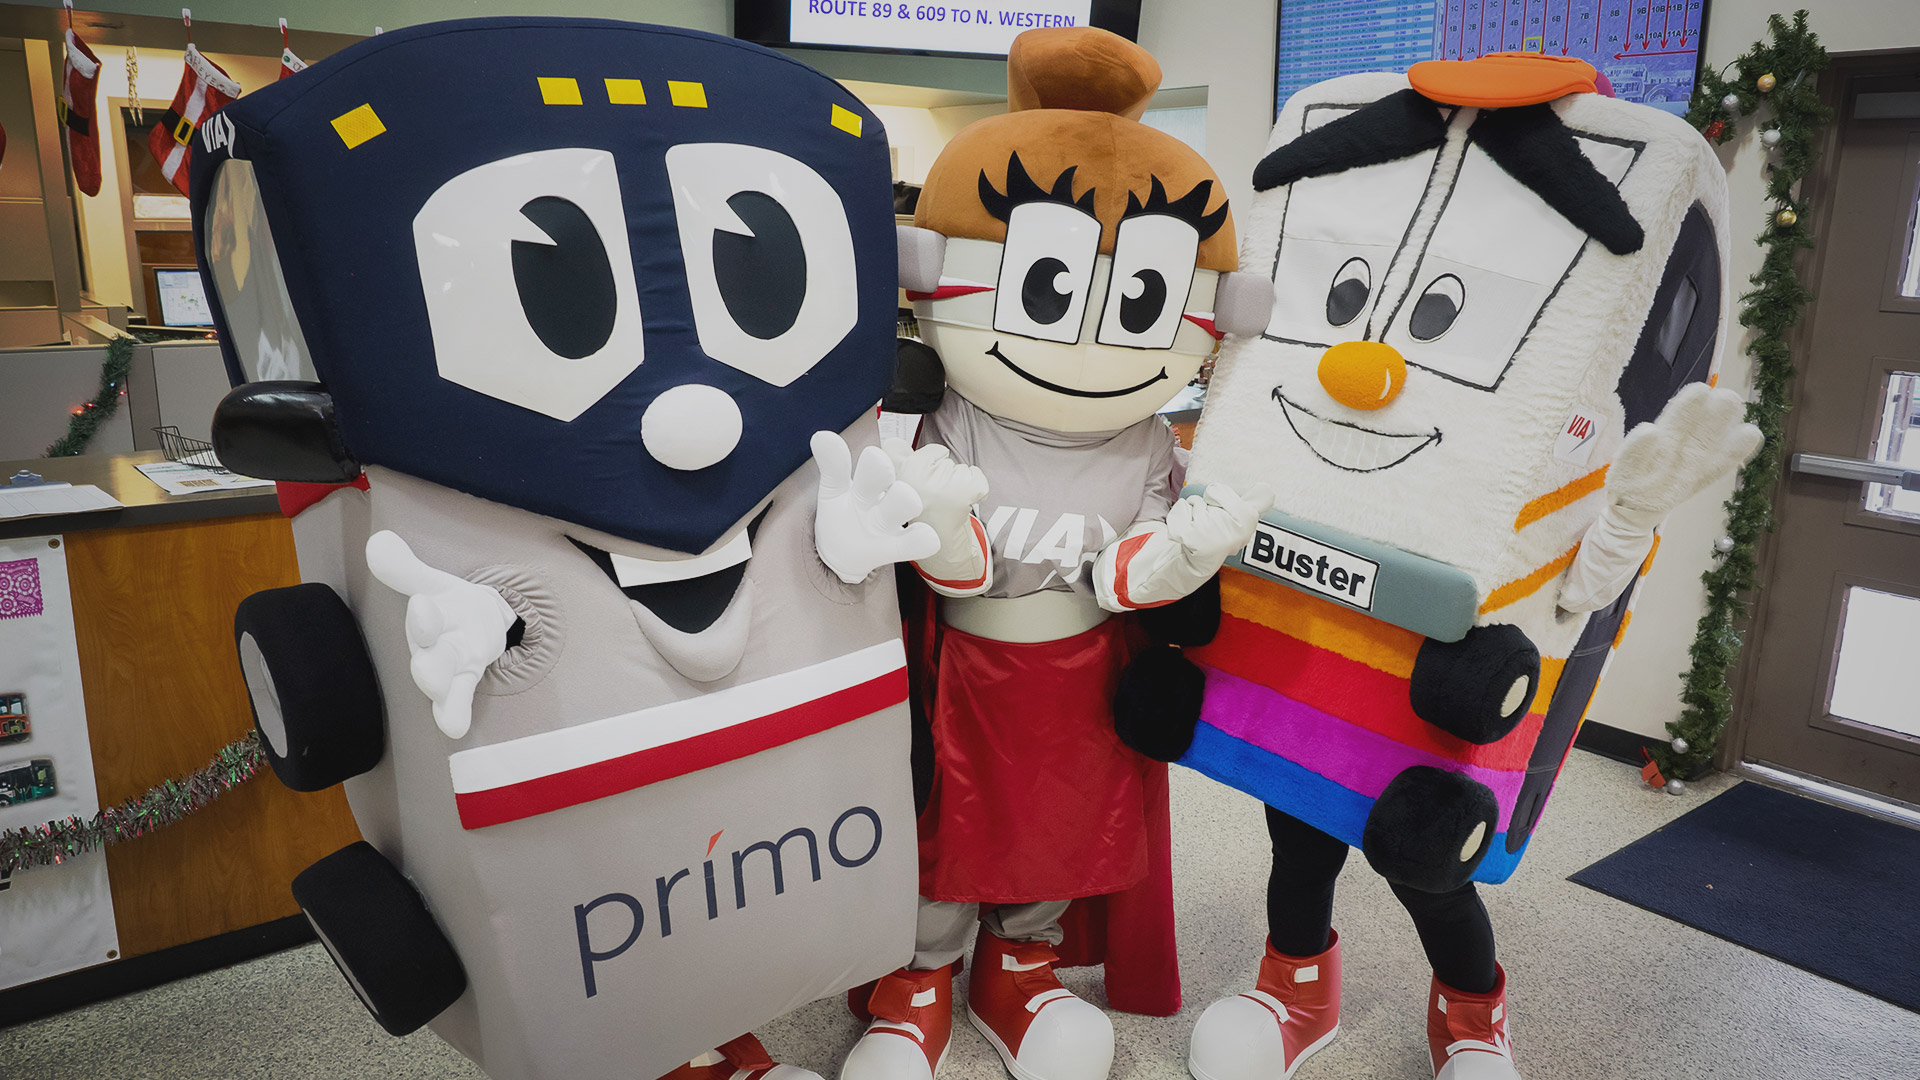 VIA Metropolitan Mascot Family, Prímo, Safety Sophie, and Buster the Bus (left to right). Source: VIA